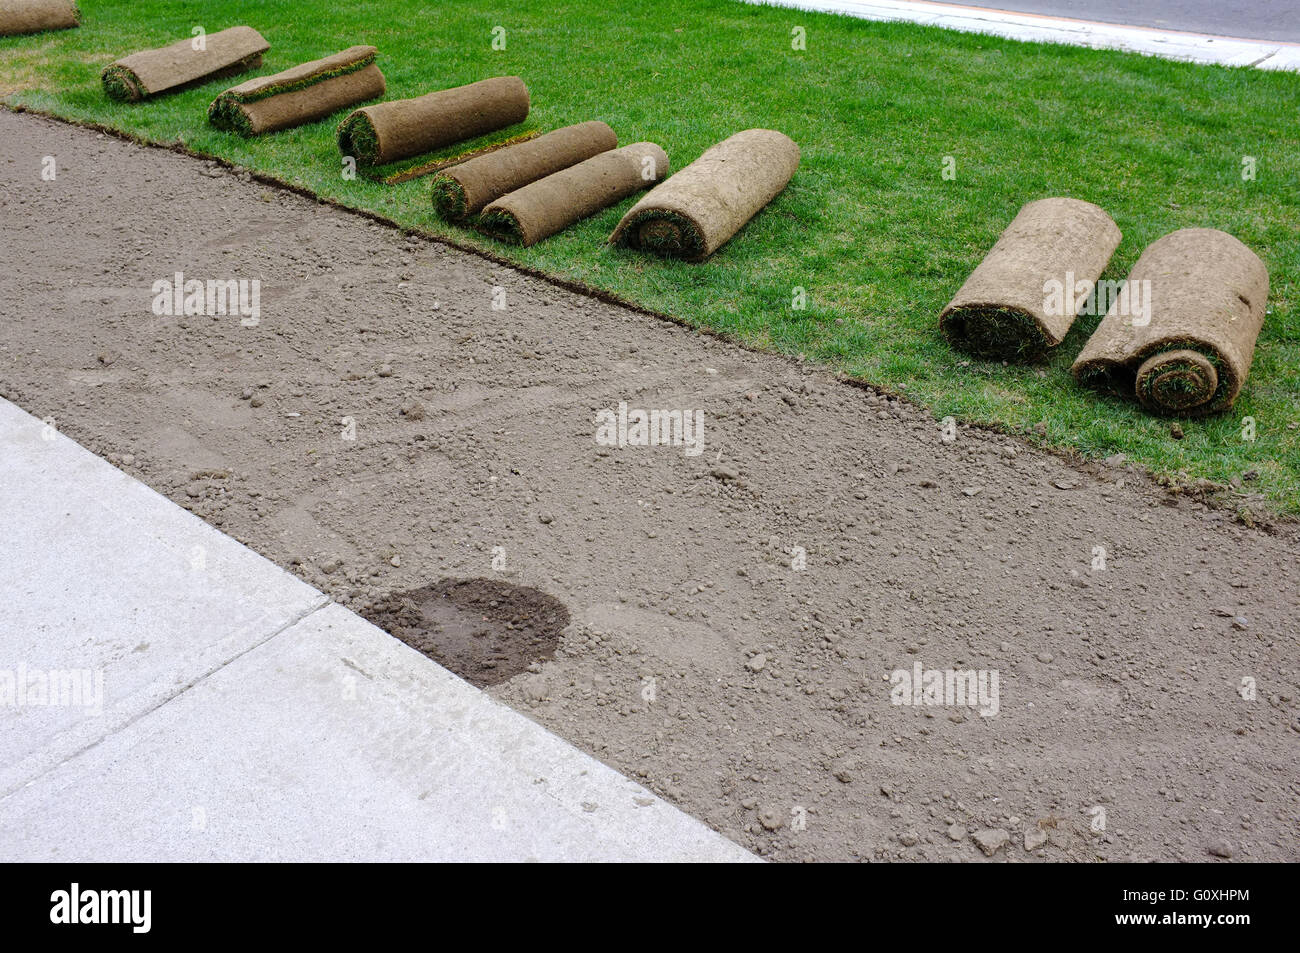 Rolls of turf being laid along a footpath in the Canadian city of London Ontario. - Stock Image